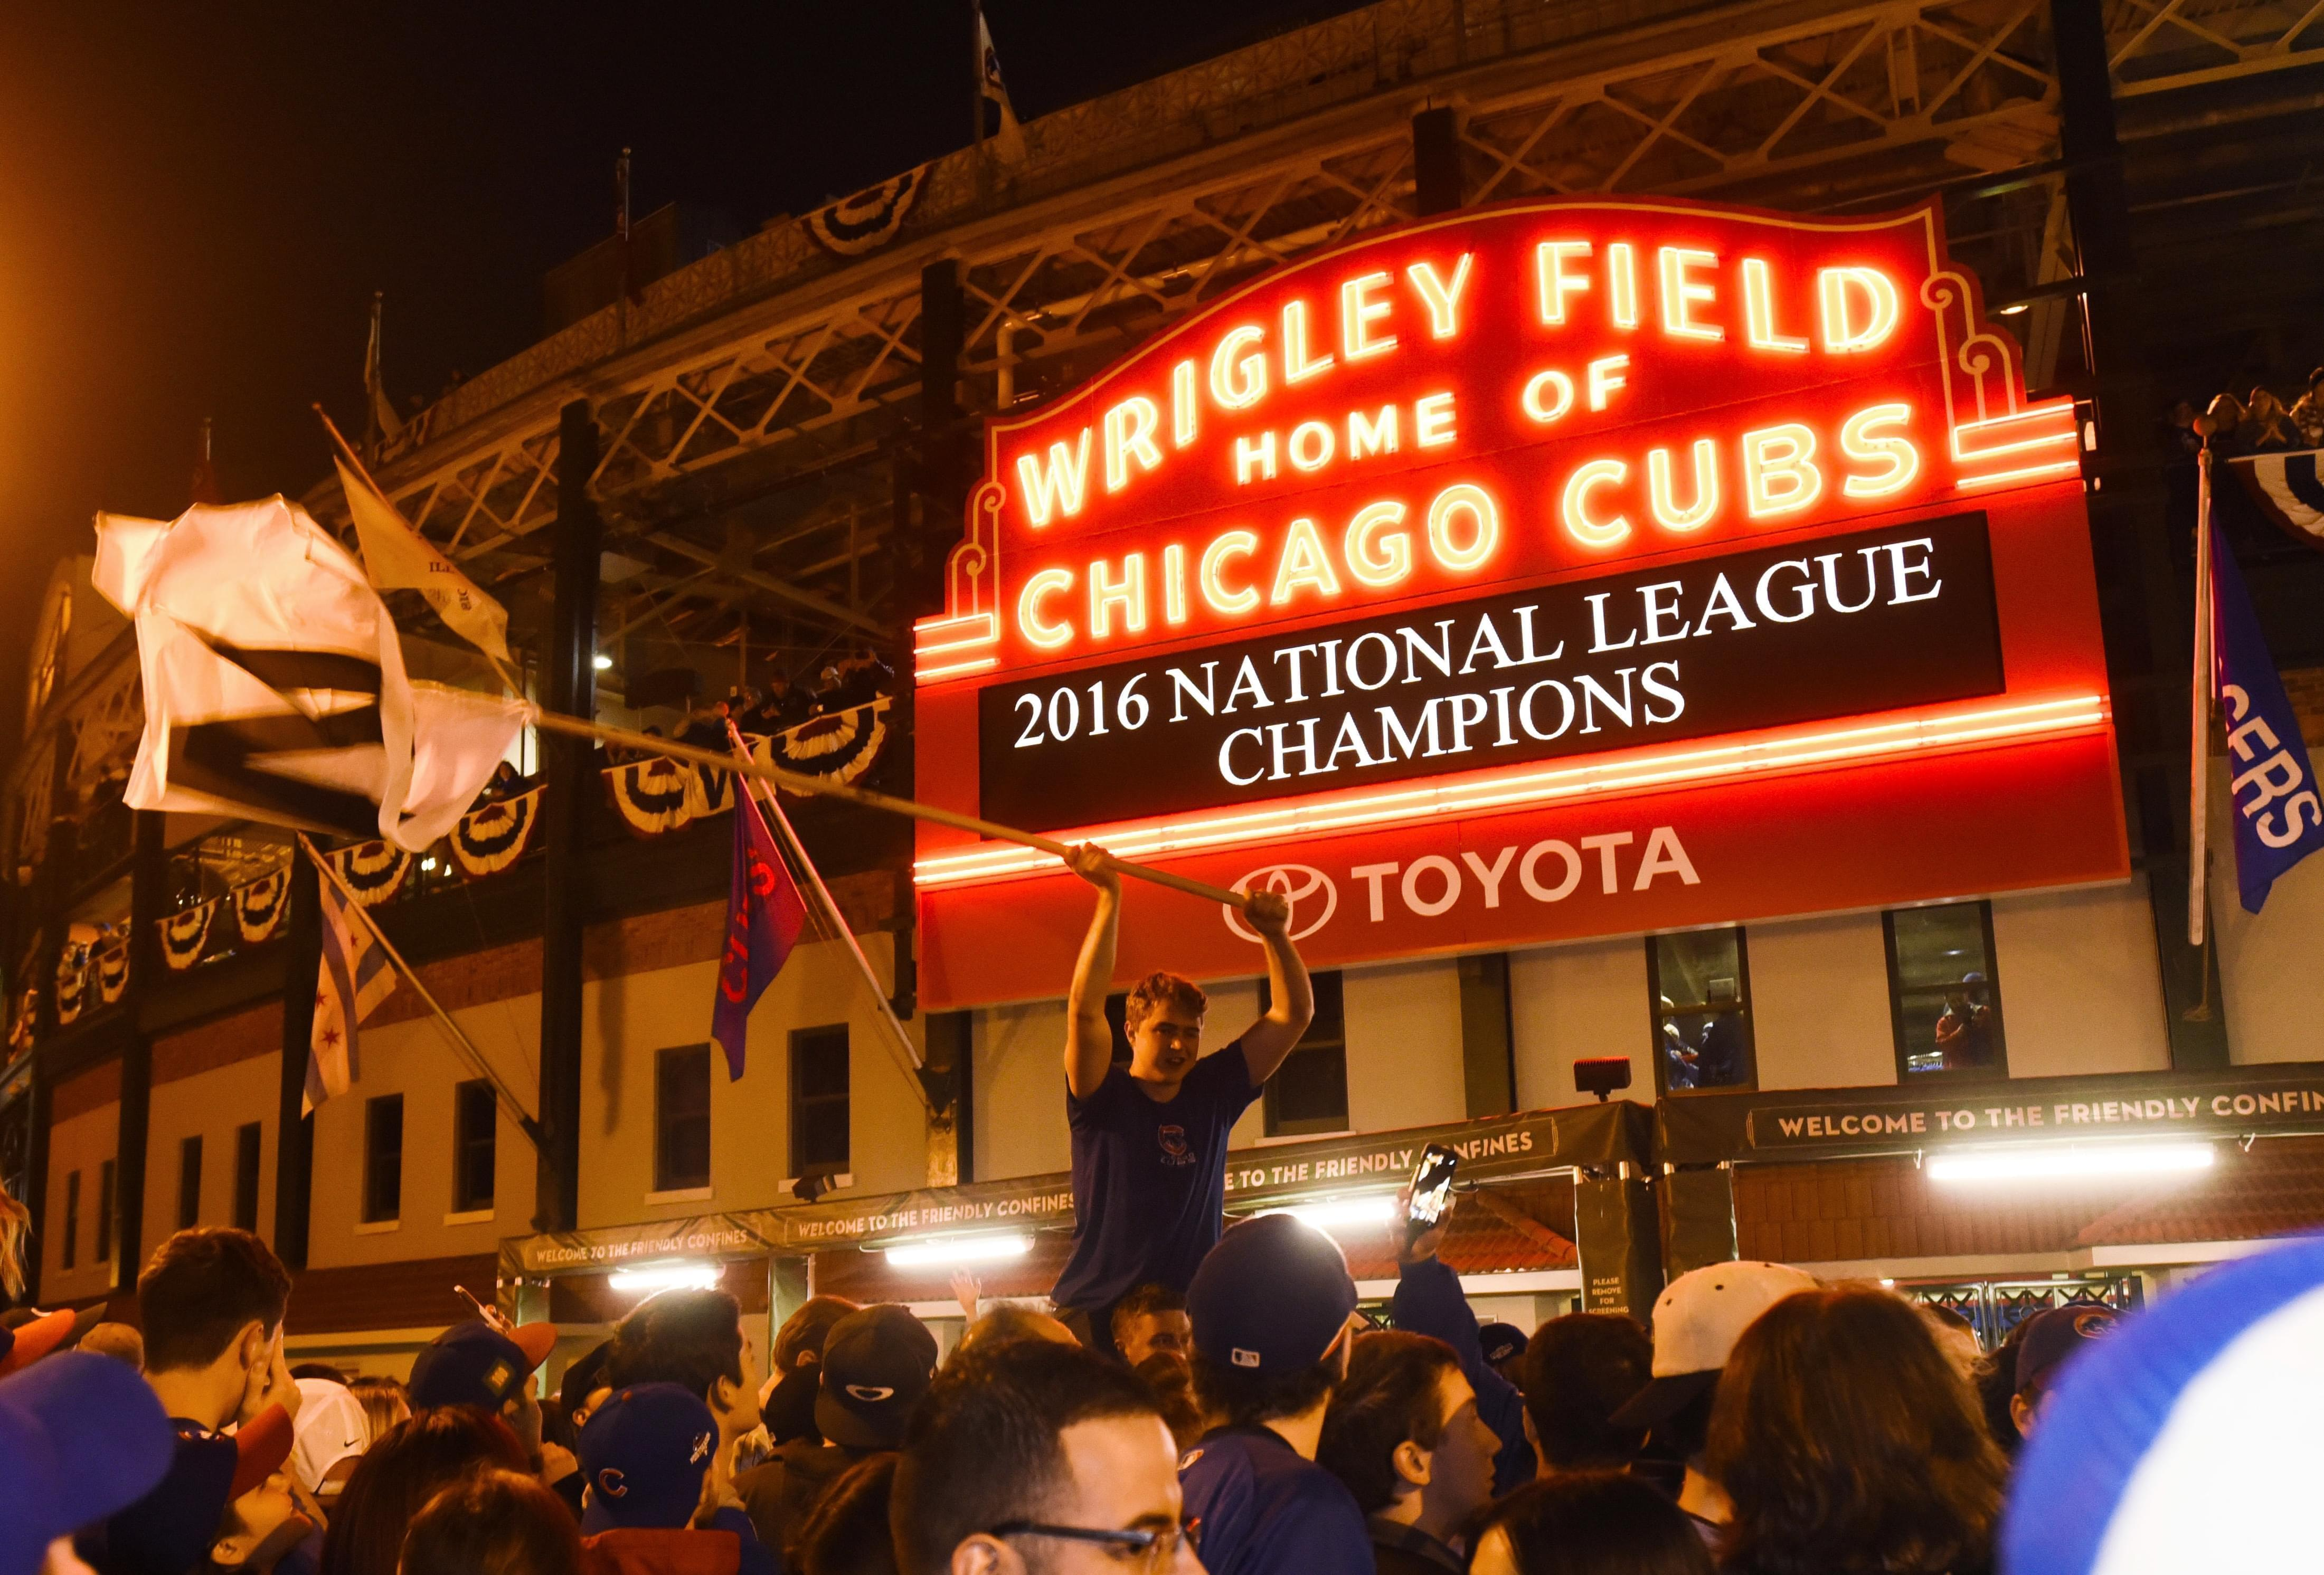 Chicago Cubs fans celebrate outside Wrigley Field after the Cubs defeated the Los Angeles Dodgers 5-0 in Game 6 of baseball's National League Championship Series, Saturday, Oct. 22, 2016, in Chicago. The Cubs advanced to the World Series.